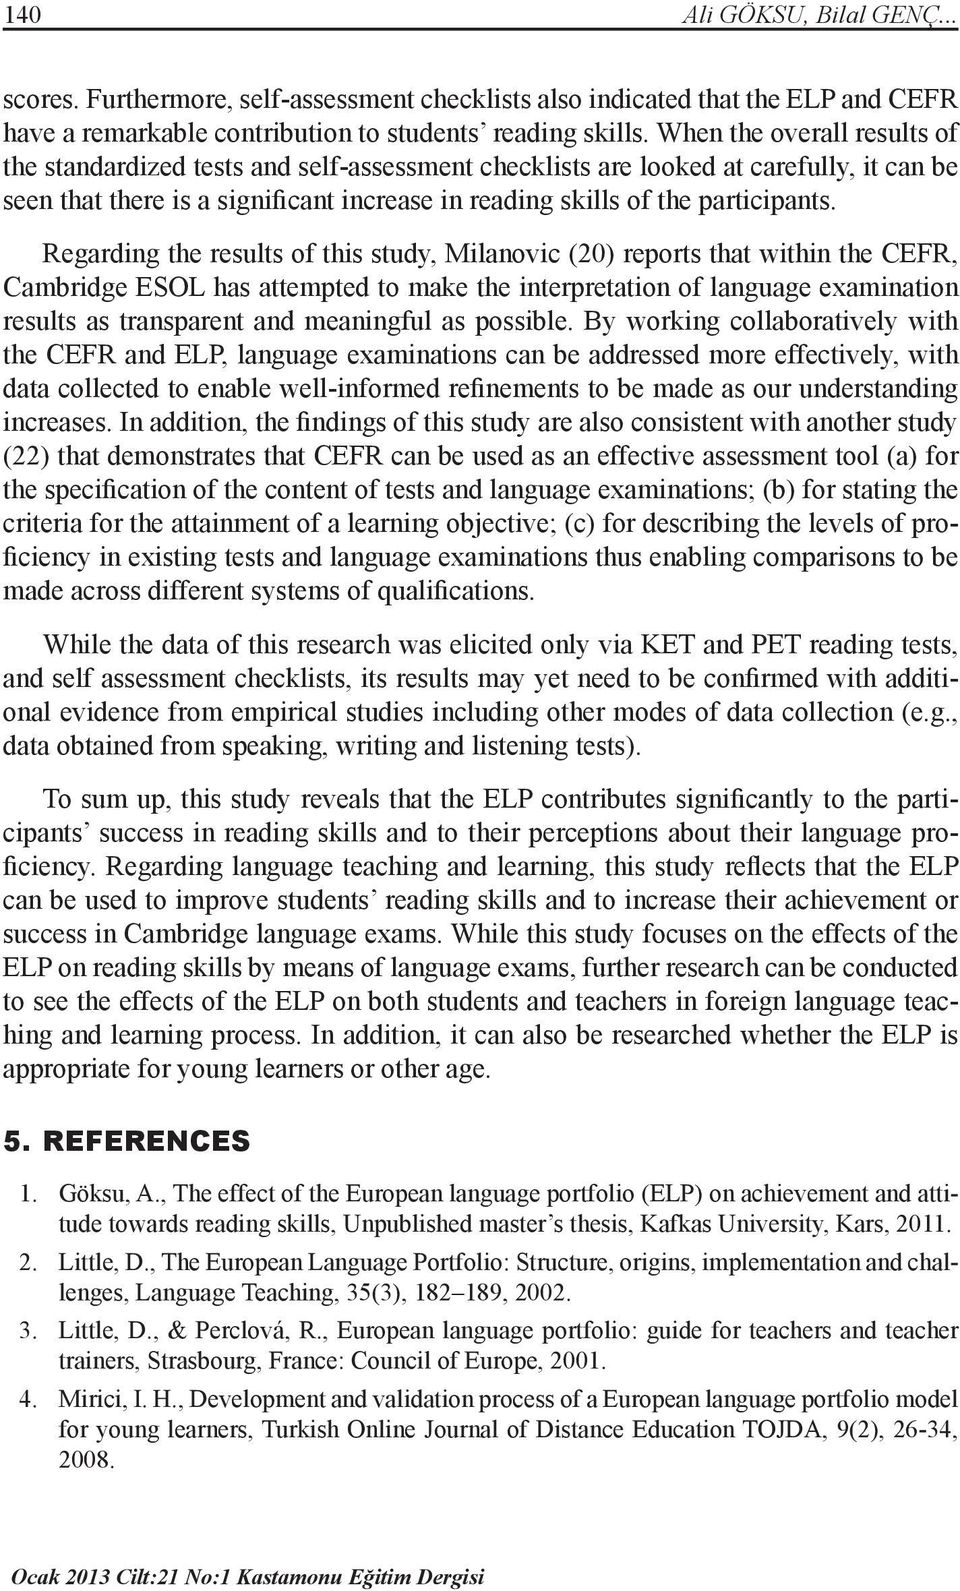 Regarding the results of this study, Milanovic (20) reports that within the CEFR, Cambridge ESOL has attempted to make the interpretation of language examination results as transparent and meaningful